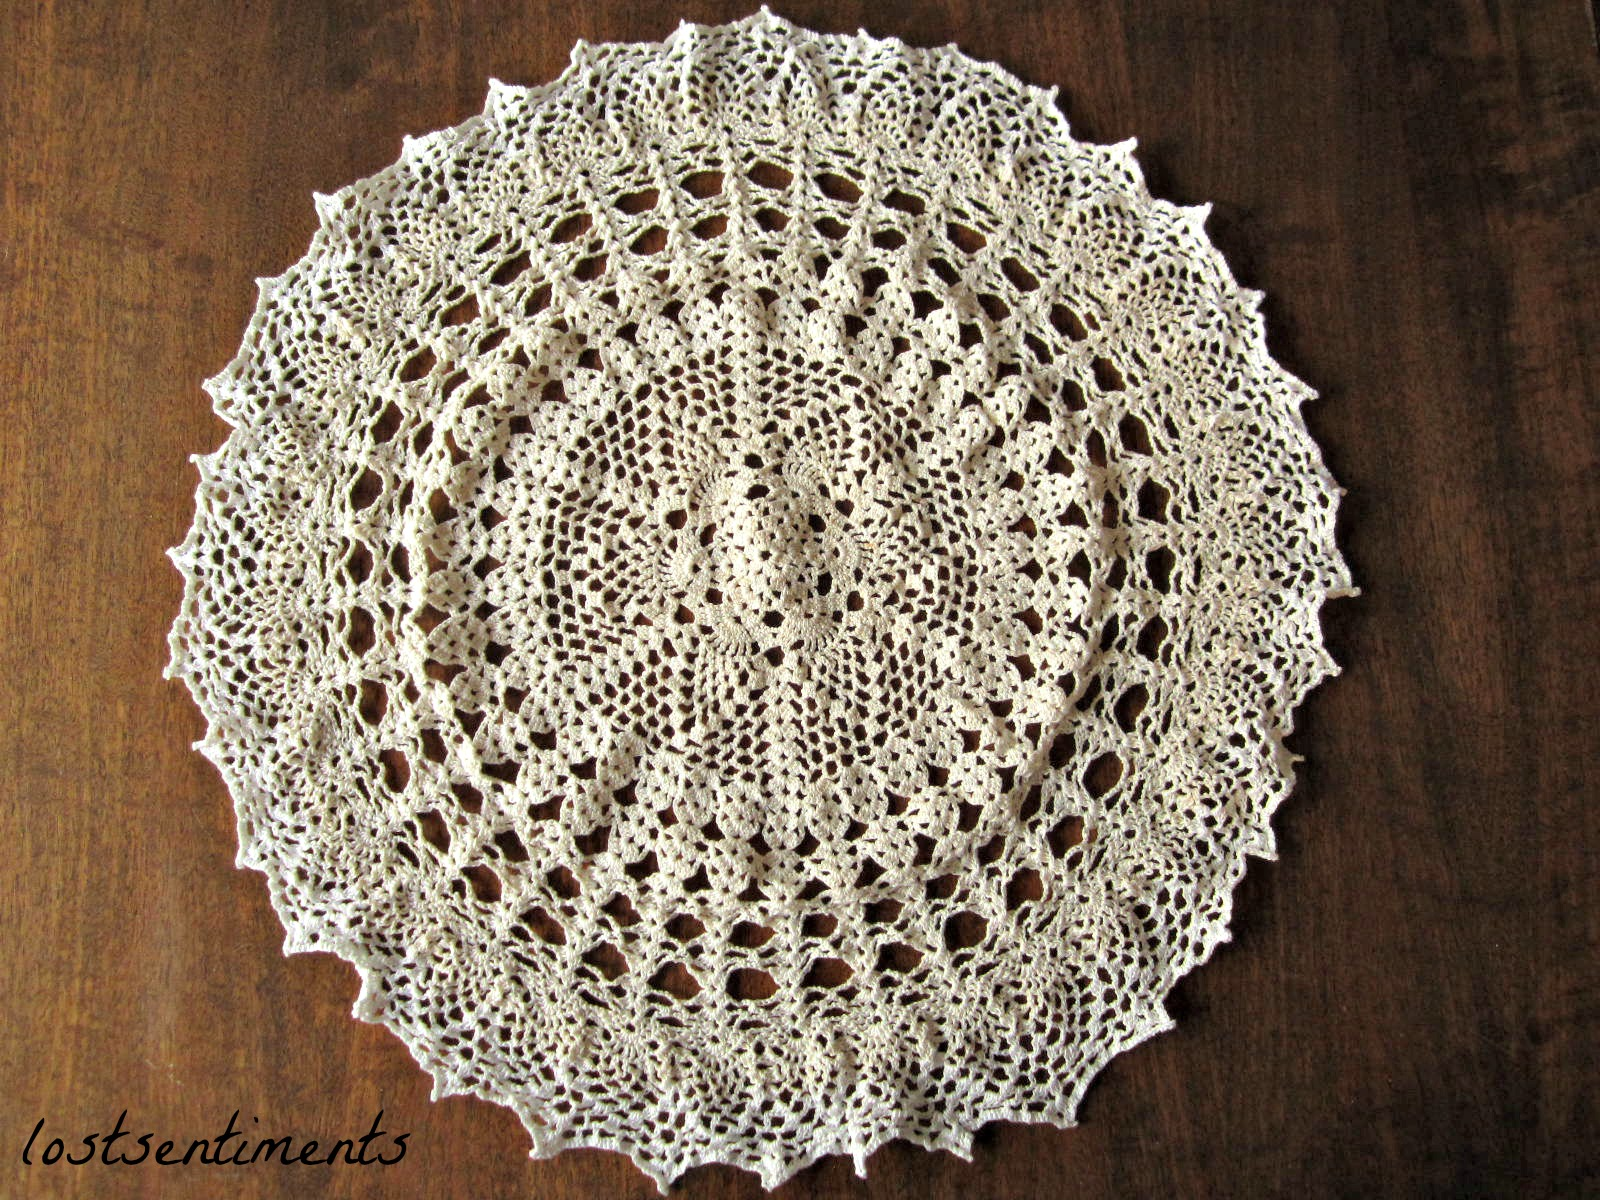 Crochet Patterns Vintage Doilies : ... the white thread after all and finish the doily call it an ombre doily